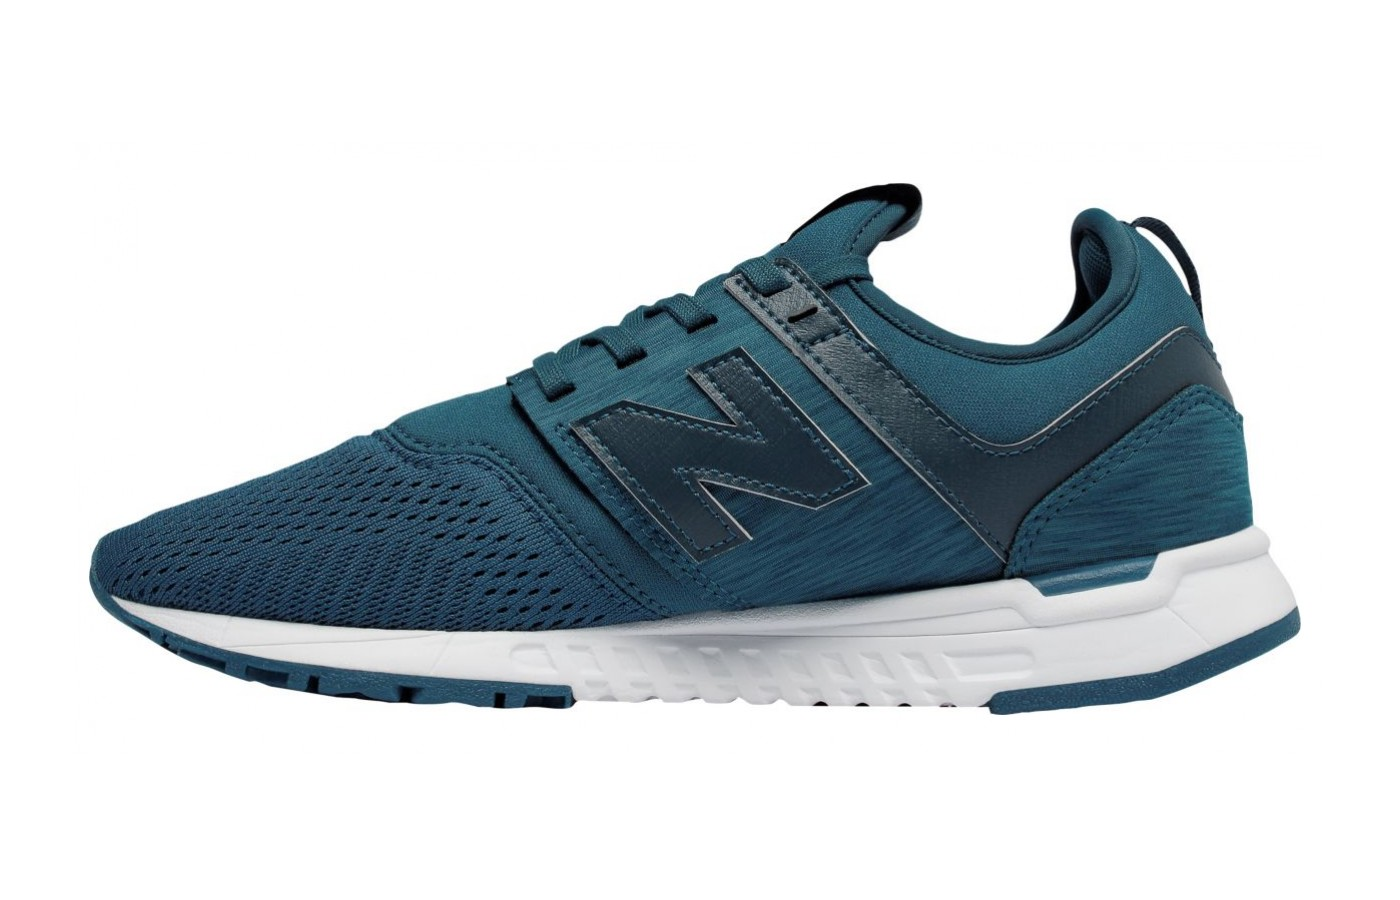 349dabf677722 New Balance 247 Classic Tested for Performance in 2019 | WalkJogRun